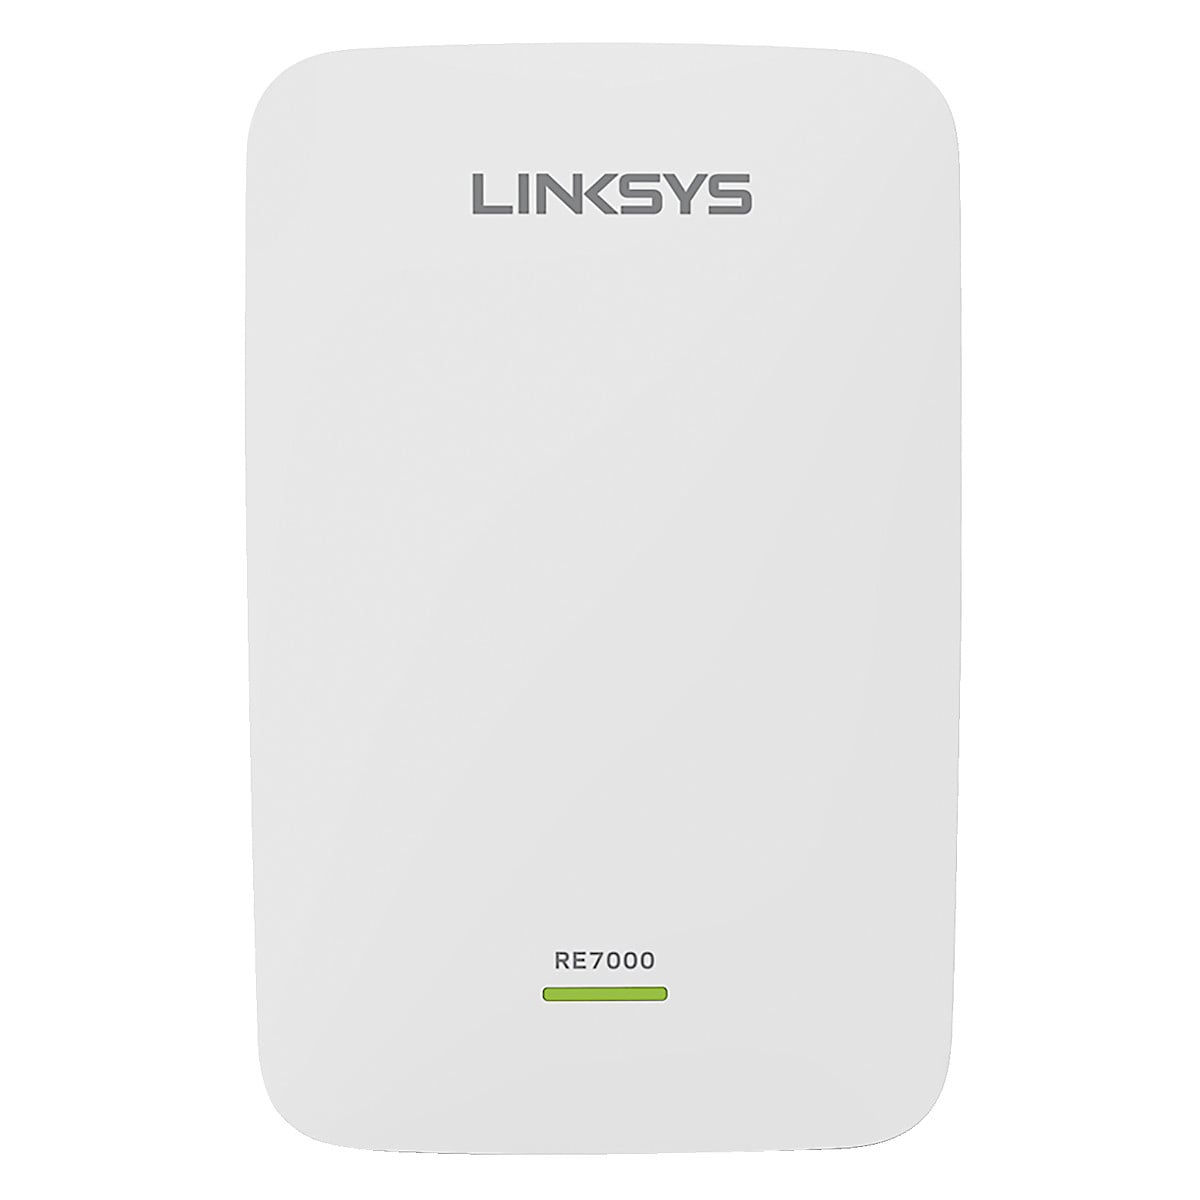 Trådlös repeater AC, Linksys RE7000